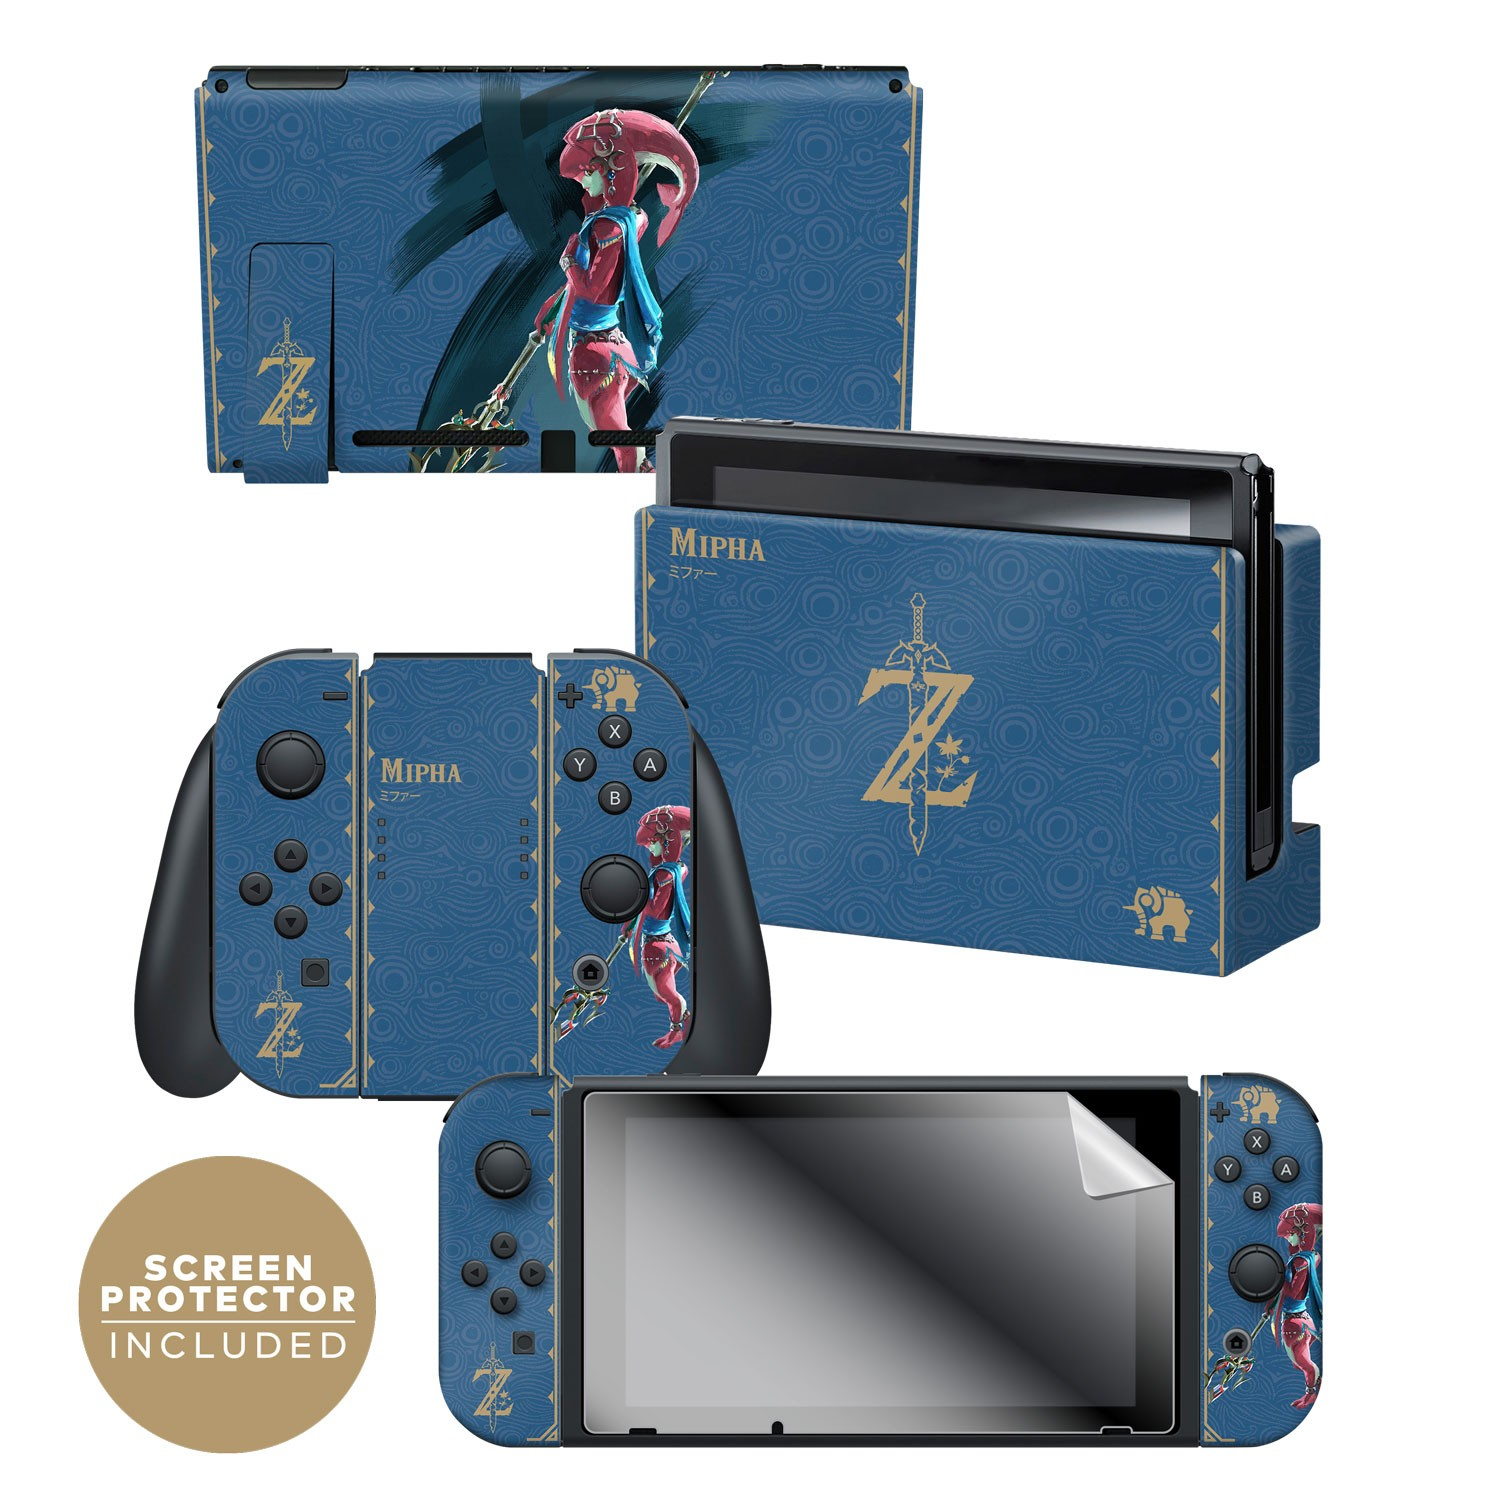 Nintendo Switch Skin & Skin Protector Set Officially Licensed by Nintendo - The Legend of Zelda: Breath of the Wild: Mipha Tribal